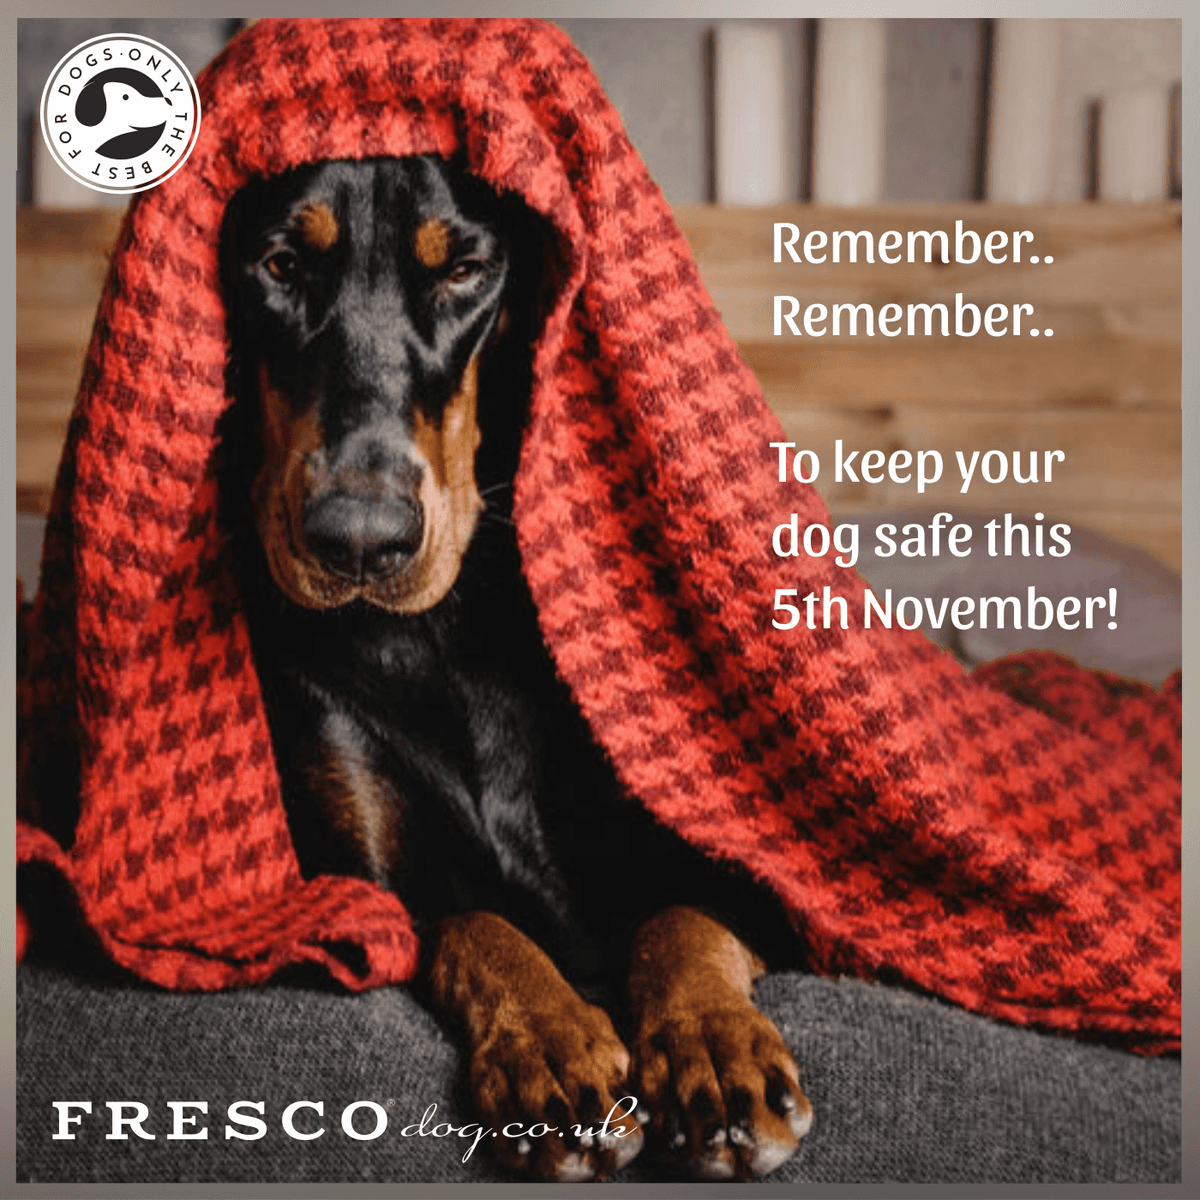 Remember, Remember to keep your dog safe this 5th of November!